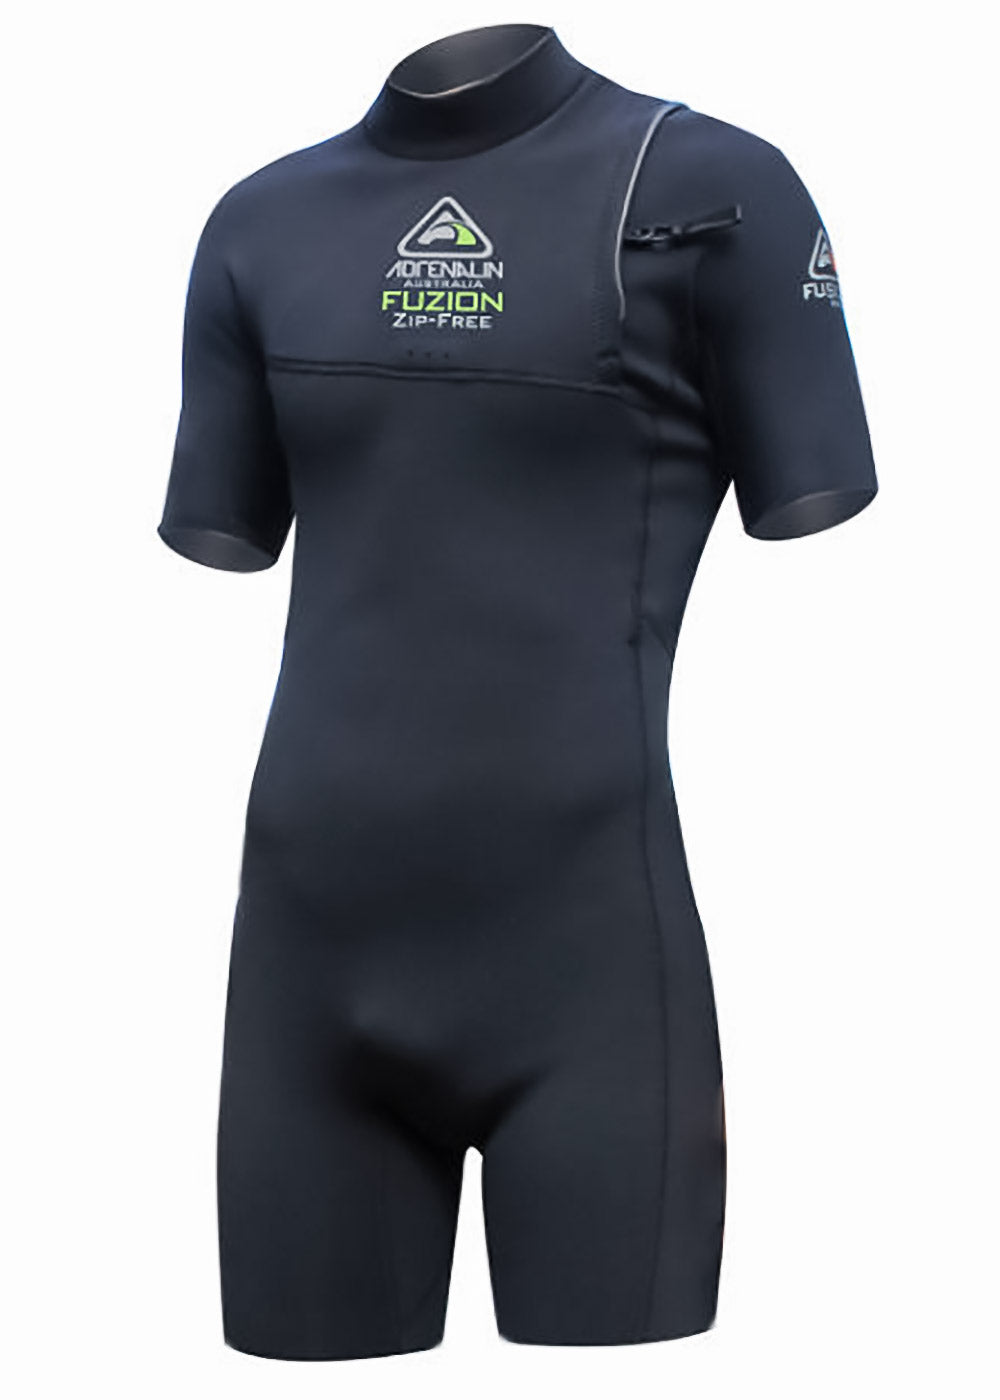 Adrenalin Mens Fuzion 2mm Zipperless Spring Suit - Buy online with Wetsuit Warehouse